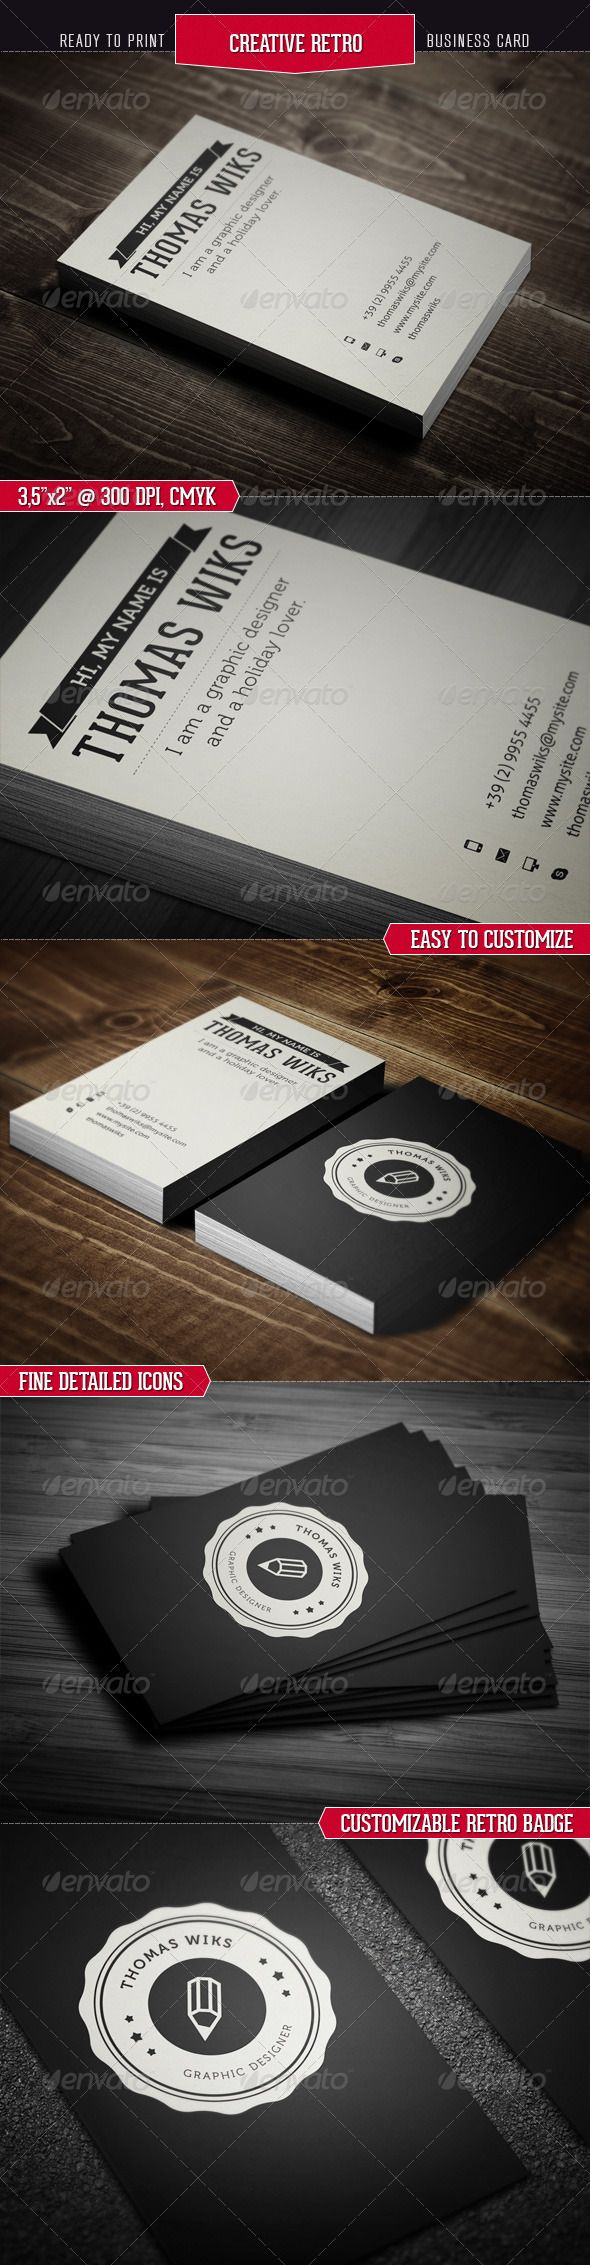 Best Business Card Template Images On Pinterest Business - Easy business card template